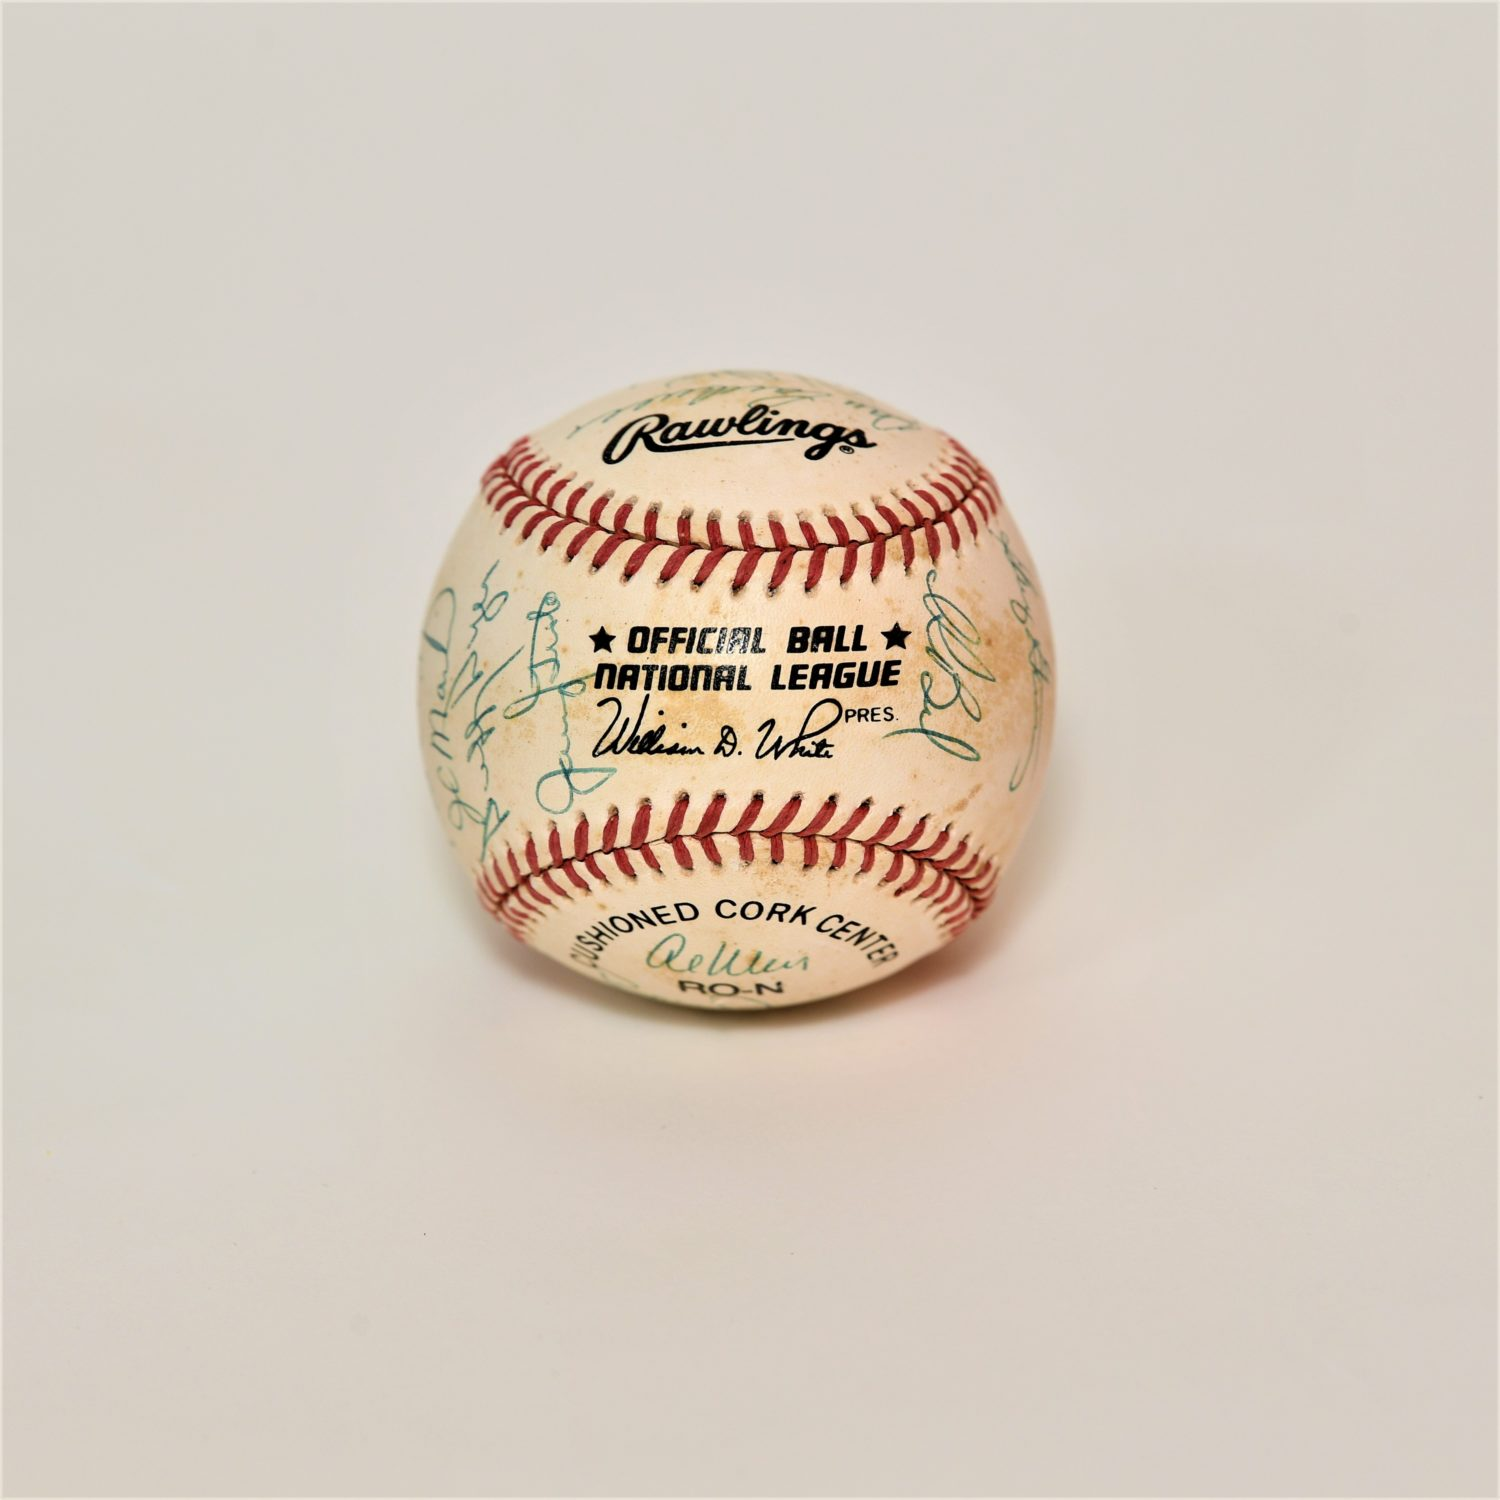 Front of baseball with scuff marks, signatures and text that reads,